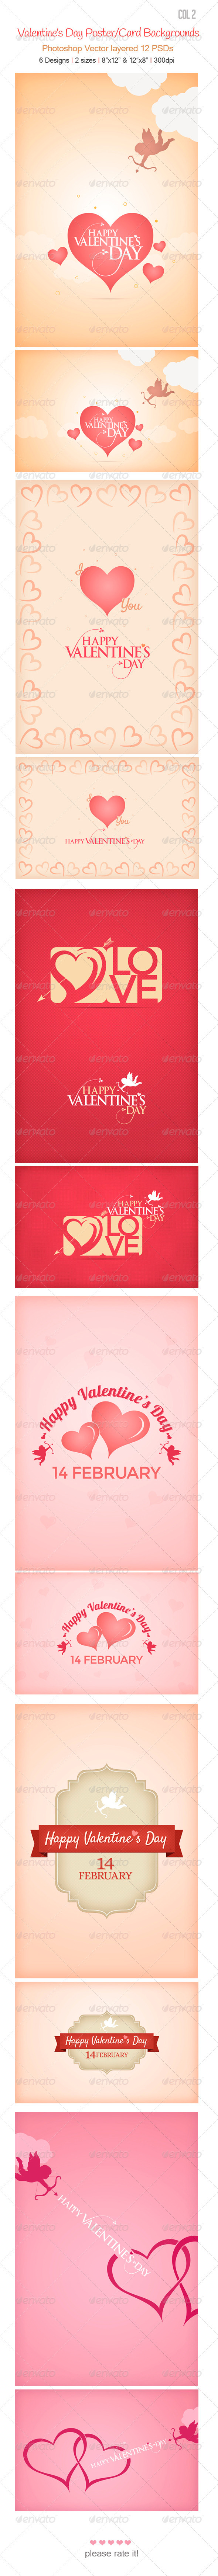 Valentine's Day Backgrounds col 2 - Miscellaneous Backgrounds